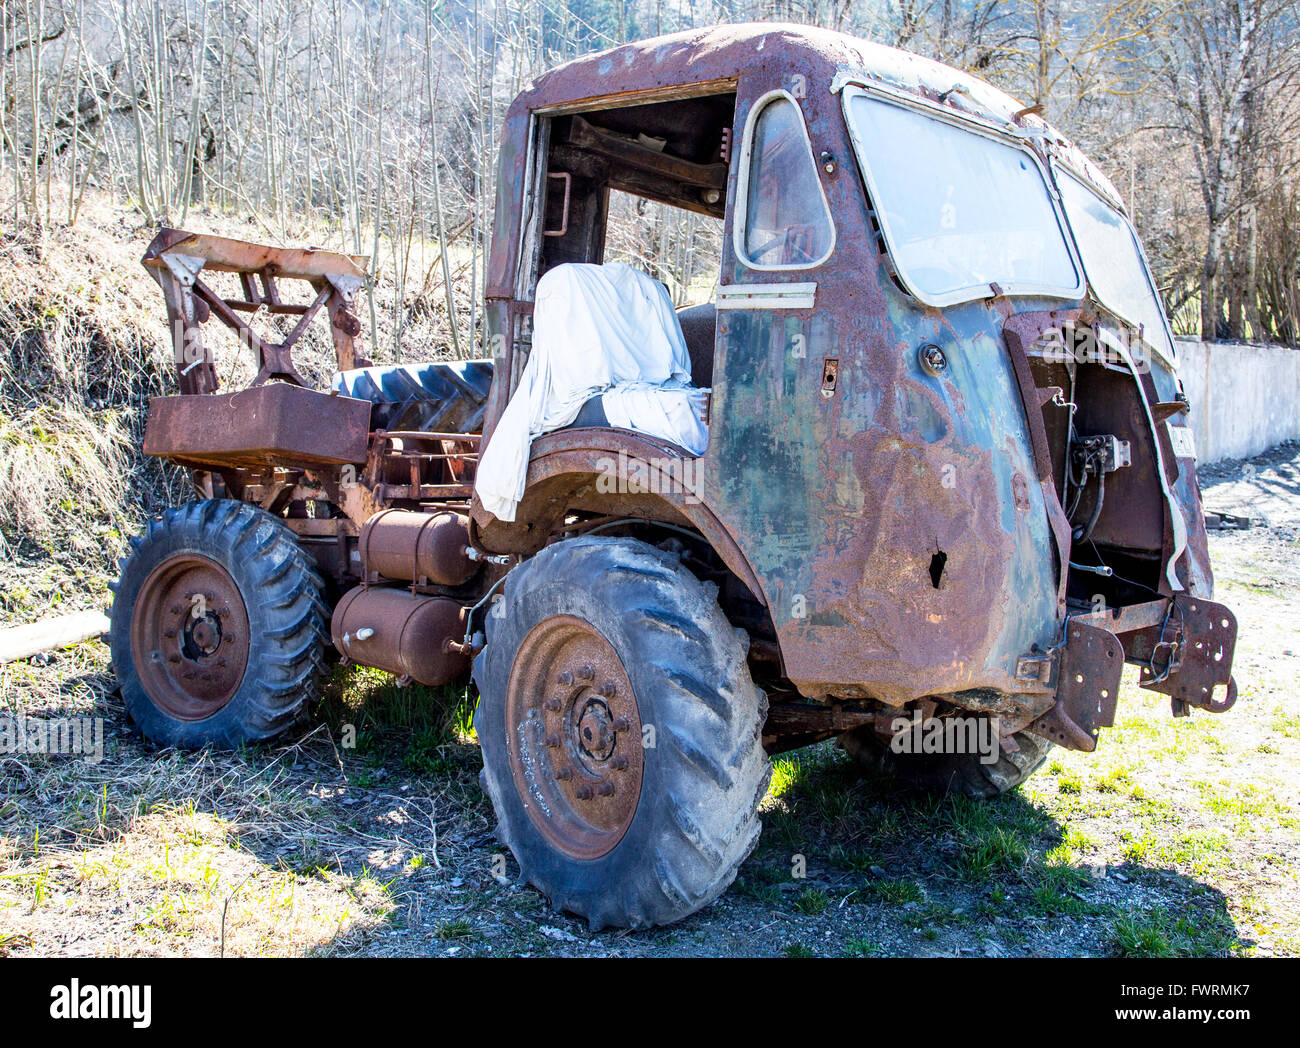 Ancient Rusty Lorry France Stock Photo - Alamy